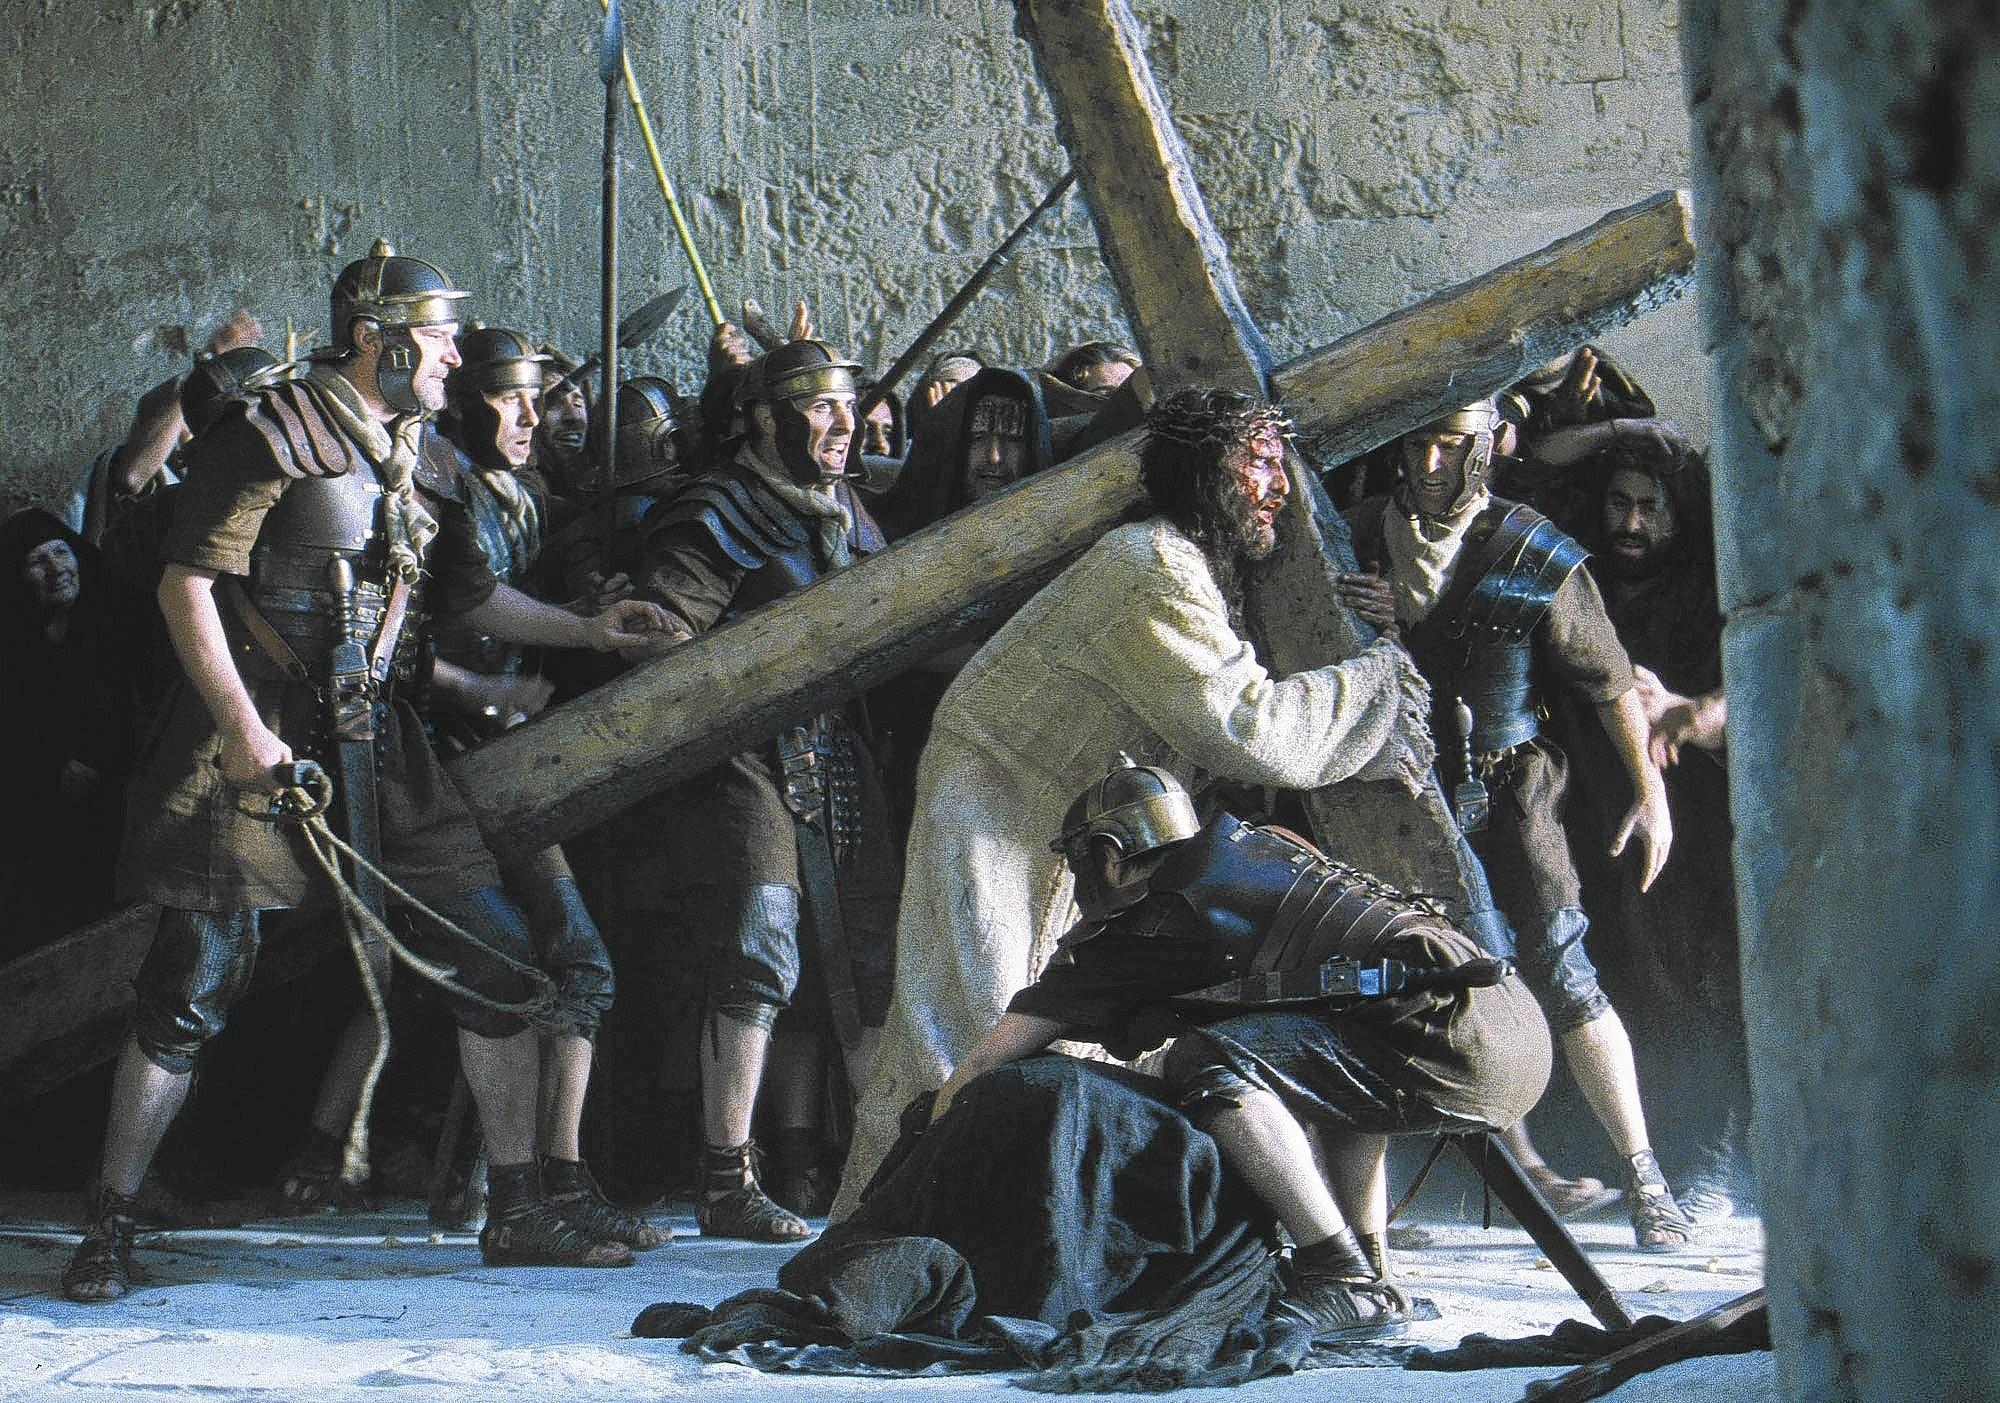 Surrounded by onlookers and Roman troops, Jesus, portrayed by the actor John Caviezel, wears a crown of thorns as he carries a wooden cross to the site of his Crucifixion in Mel Gibson's new film 'The Passion of The Christ,' which recounts the last 12 hours of Jesus' life.